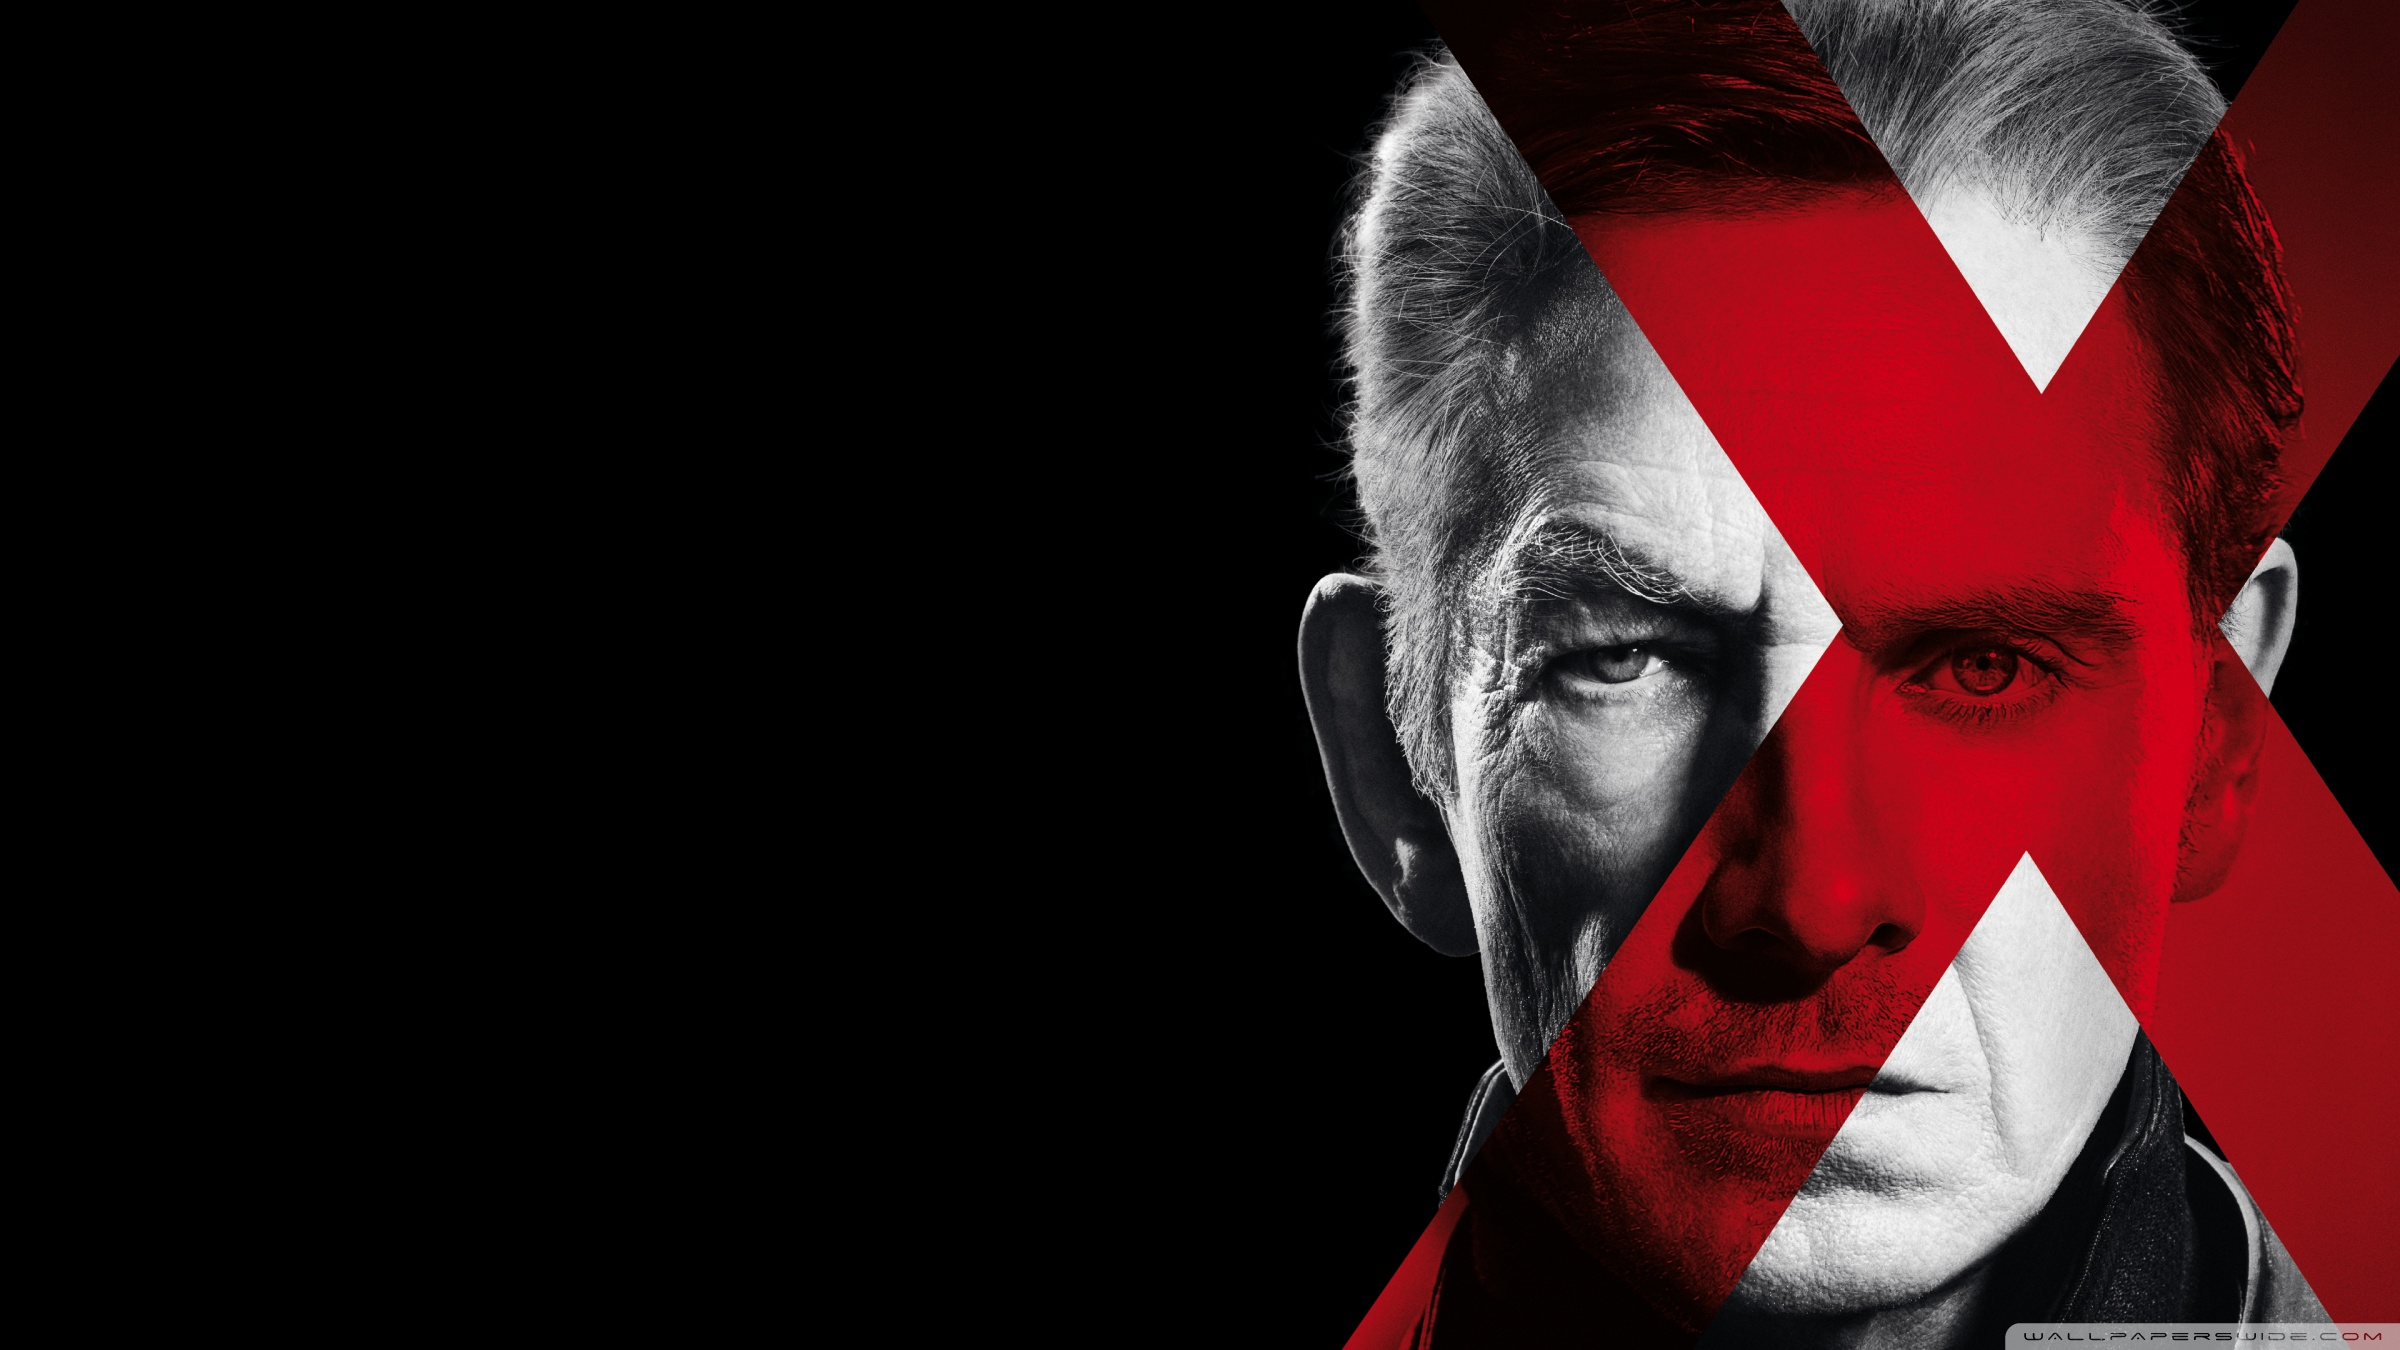 magneto x men wallpaper 38742211 fanpop